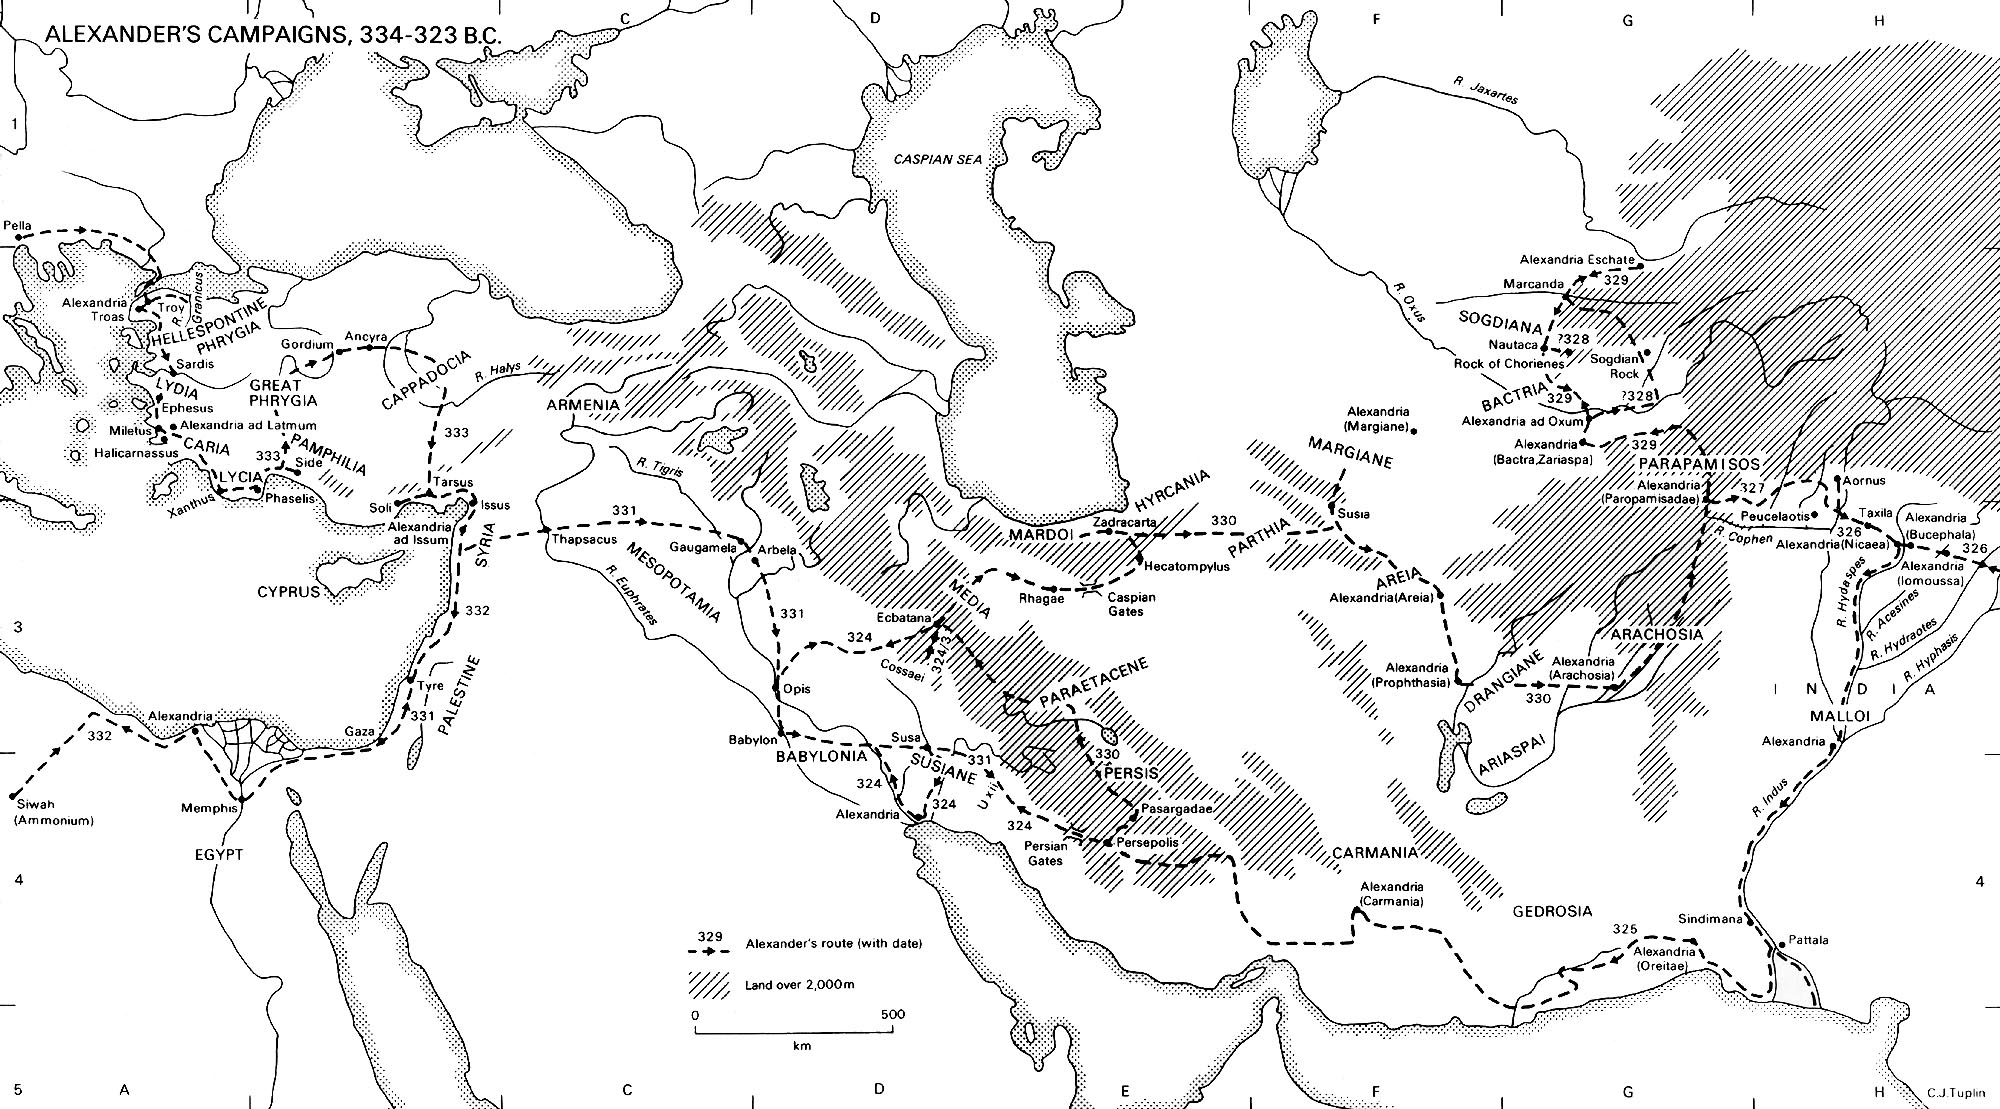 Map of Alexander's Campaigns